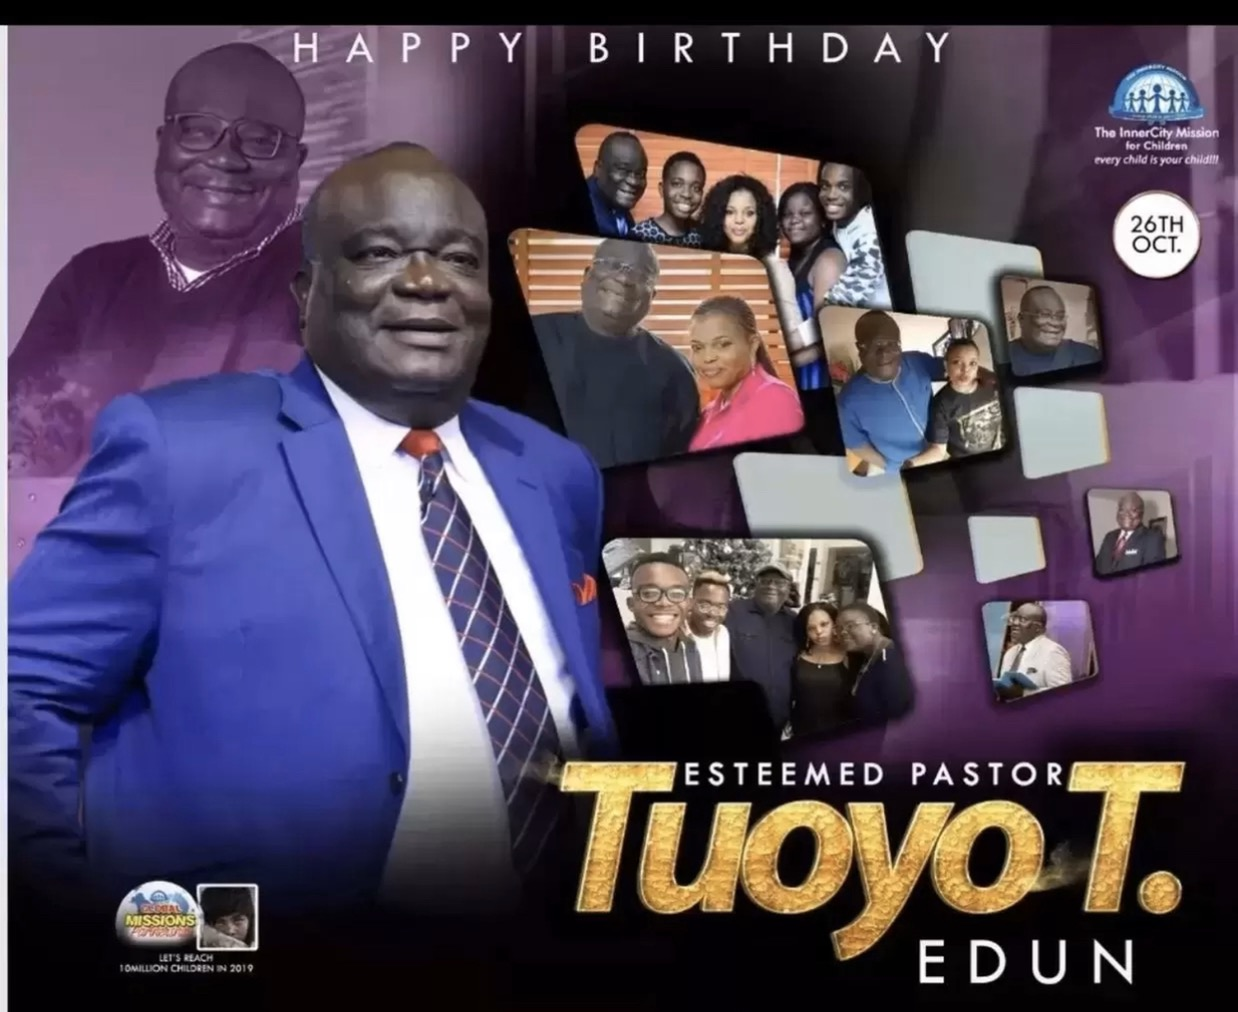 Happy birthday Pastor TT sir.